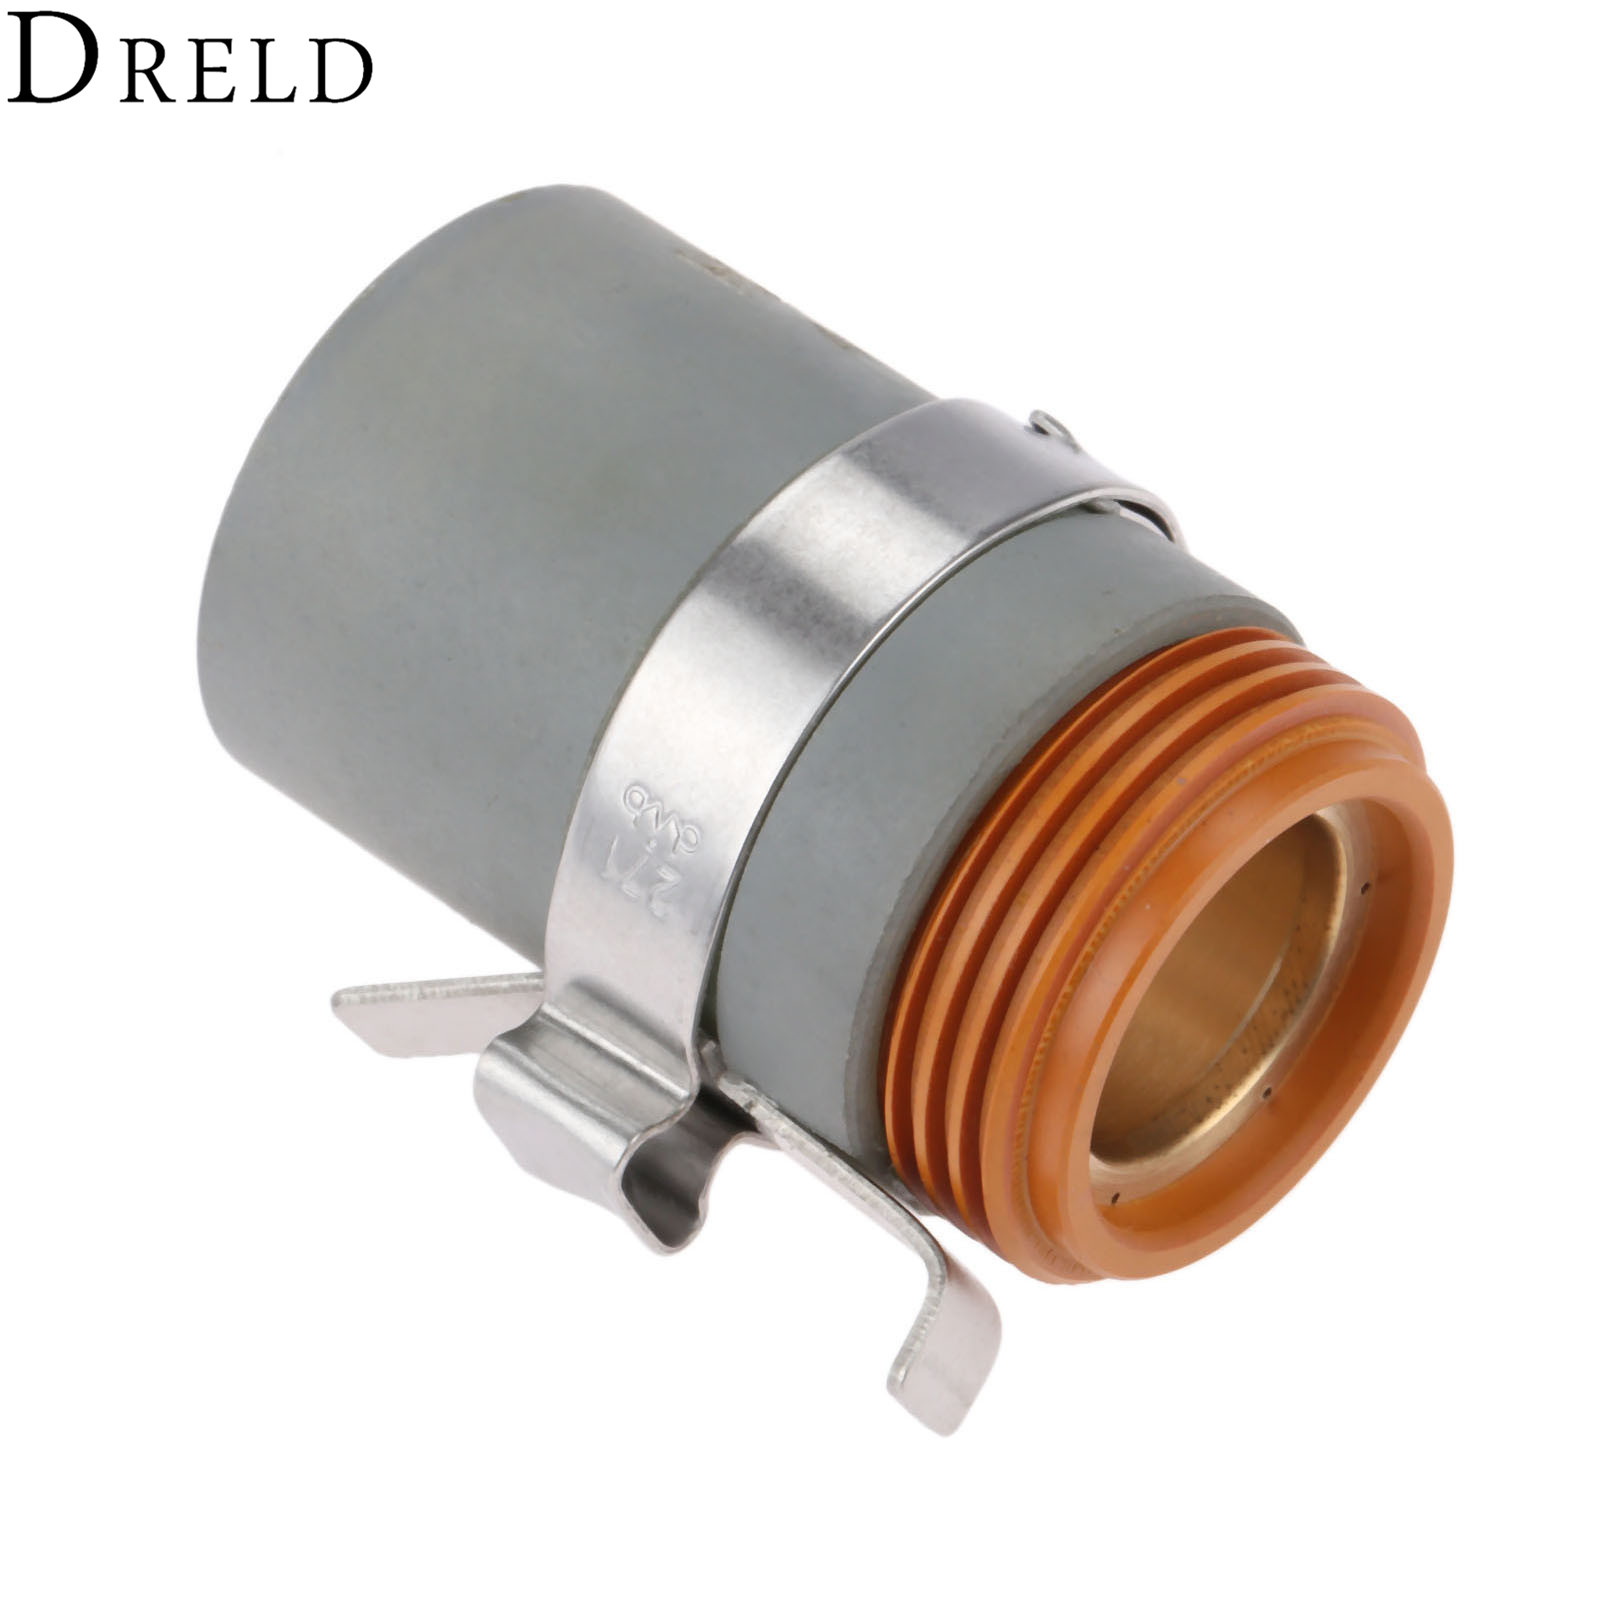 DRELD Cutter Plasma Retaining Cap 220061 40A-80A For Air Plamsa Cutting Torch 1000 1250 1650 RT60 Consumables Shielded-Ohmic